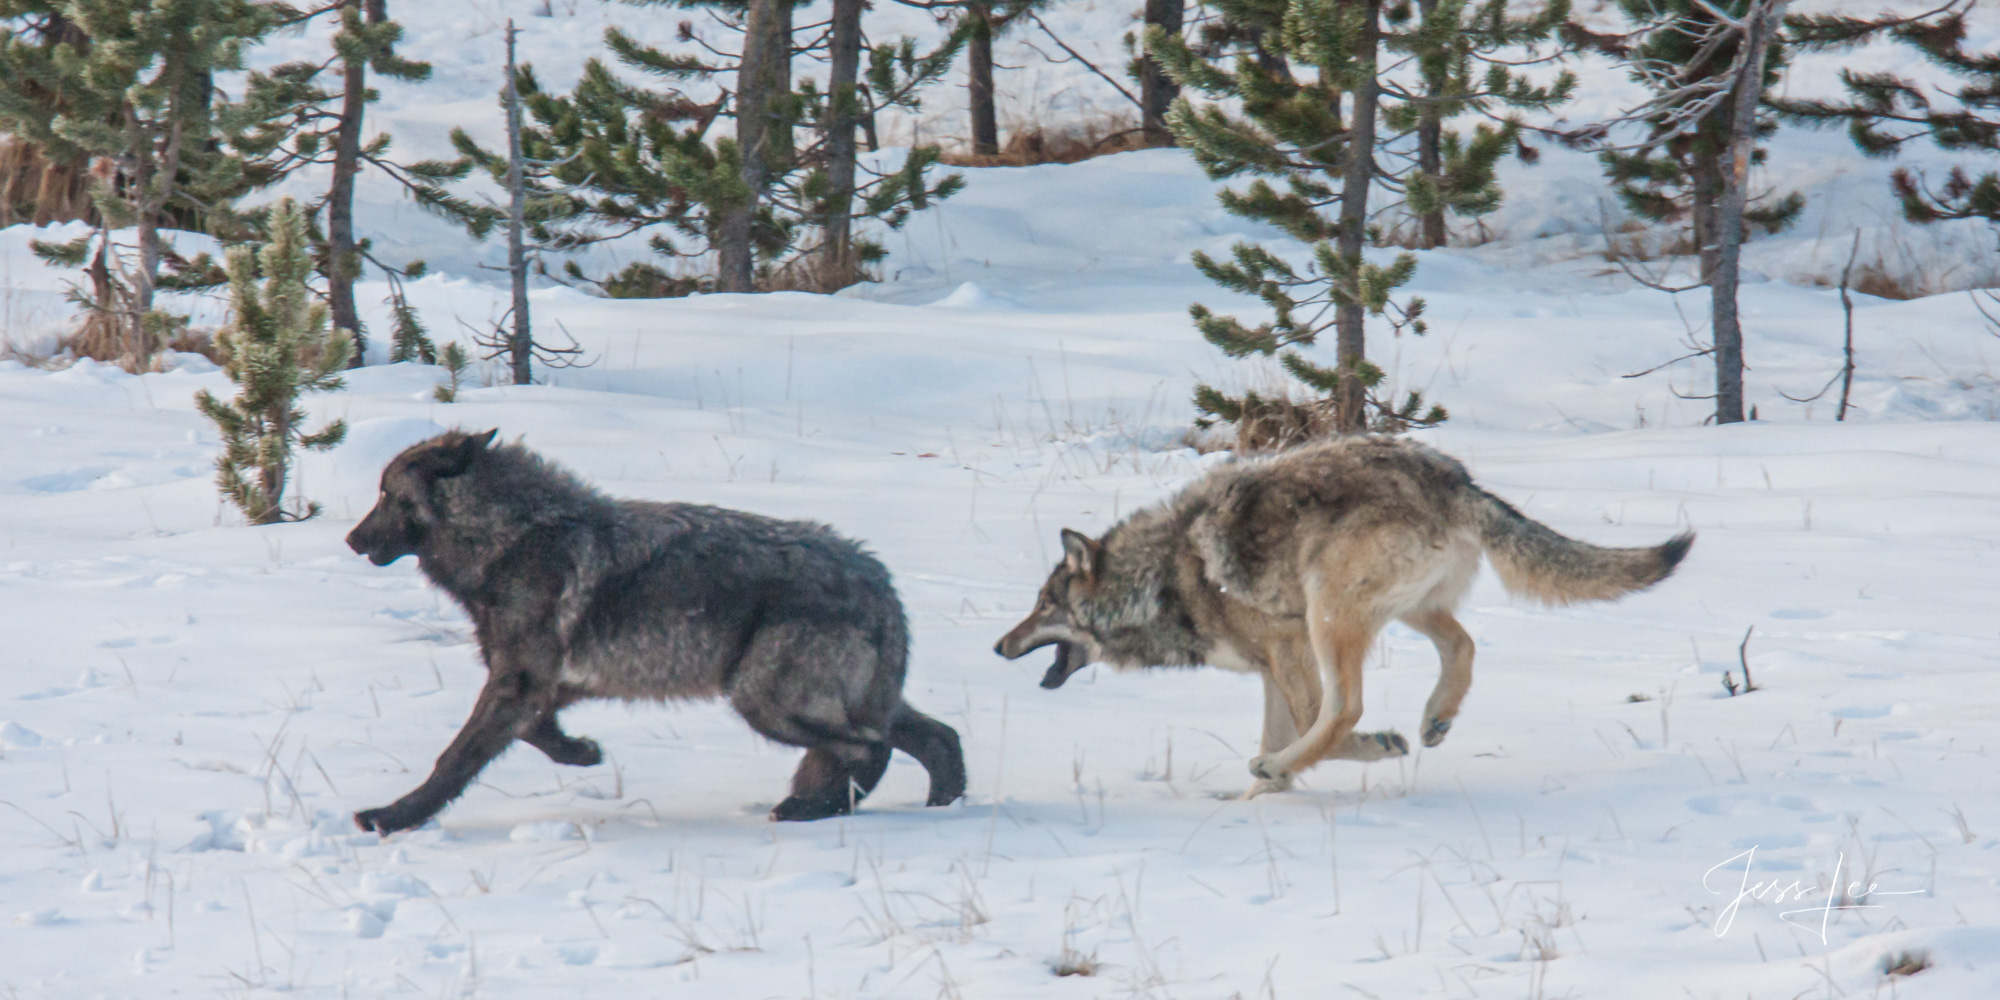 Yellowstone Wolf in the Wild. Exclusive limited edition photo of 200 prints by Jess Lee